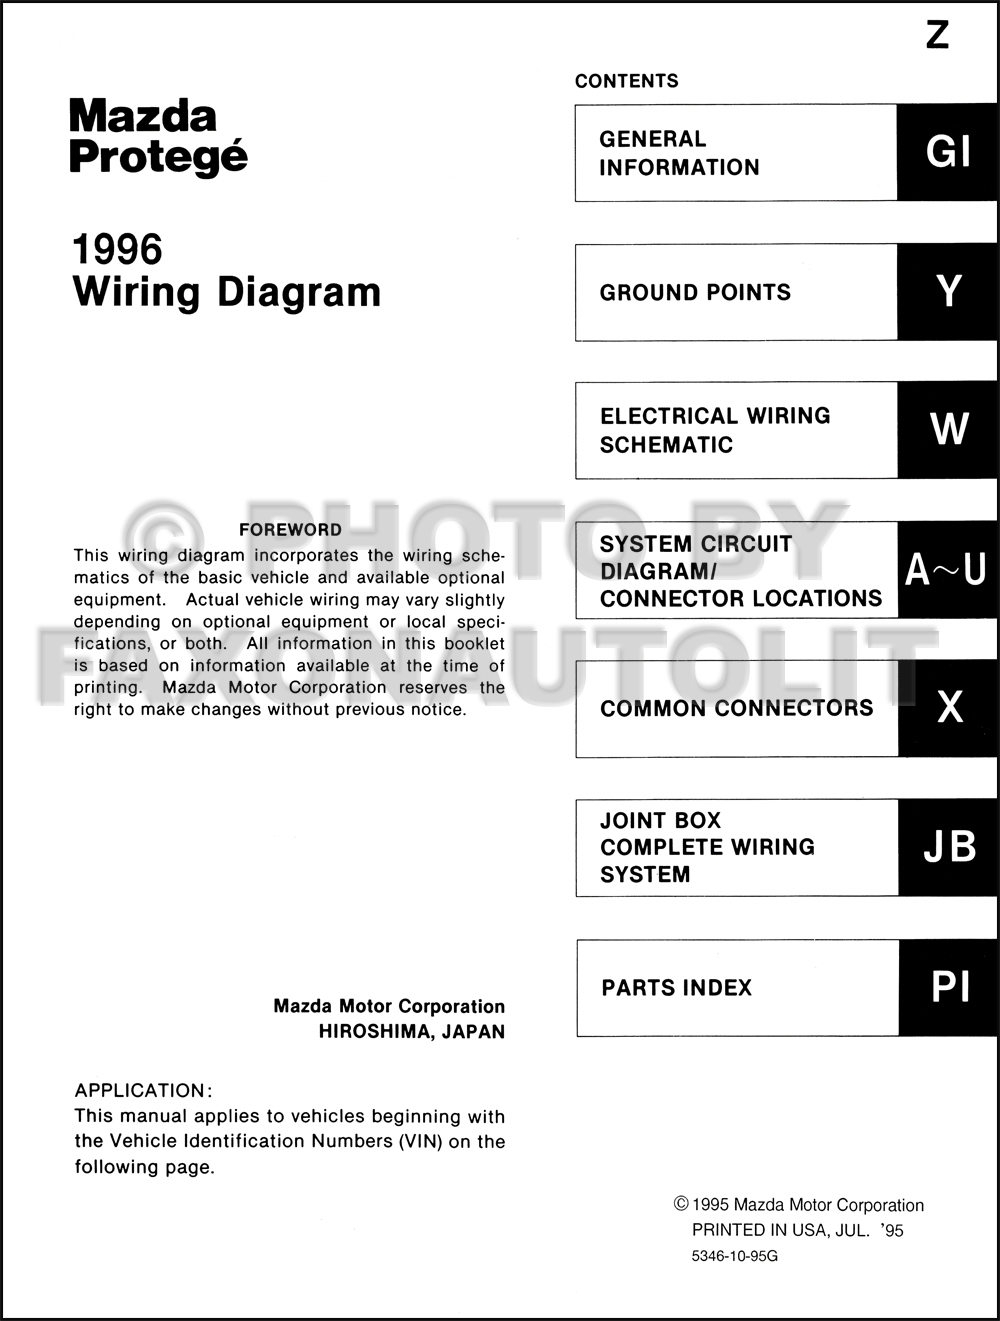 Mazda Protege Wiring Diagram - Wiring Diagram Data Schema on ford mustang shaker 500 radio wiring diagram, chevy s10 radio wiring diagram, honda del sol radio wiring diagram, geo metro radio wiring diagram, chevy metro radio wiring diagram, chevy trailblazer radio wiring diagram, chevy blazer radio wiring diagram, toyota solara radio wiring diagram, hyundai tiburon radio wiring diagram, bmw 325i radio wiring diagram, chevy cobalt radio wiring diagram, mitsubishi montero sport radio wiring diagram, chevy impala radio wiring diagram, toyota truck radio wiring diagram, toyota mr2 radio wiring diagram, nissan sentra radio wiring diagram, geo prizm radio wiring diagram, honda s2000 radio wiring diagram, ford tempo radio wiring diagram, pontiac grand am radio wiring diagram,